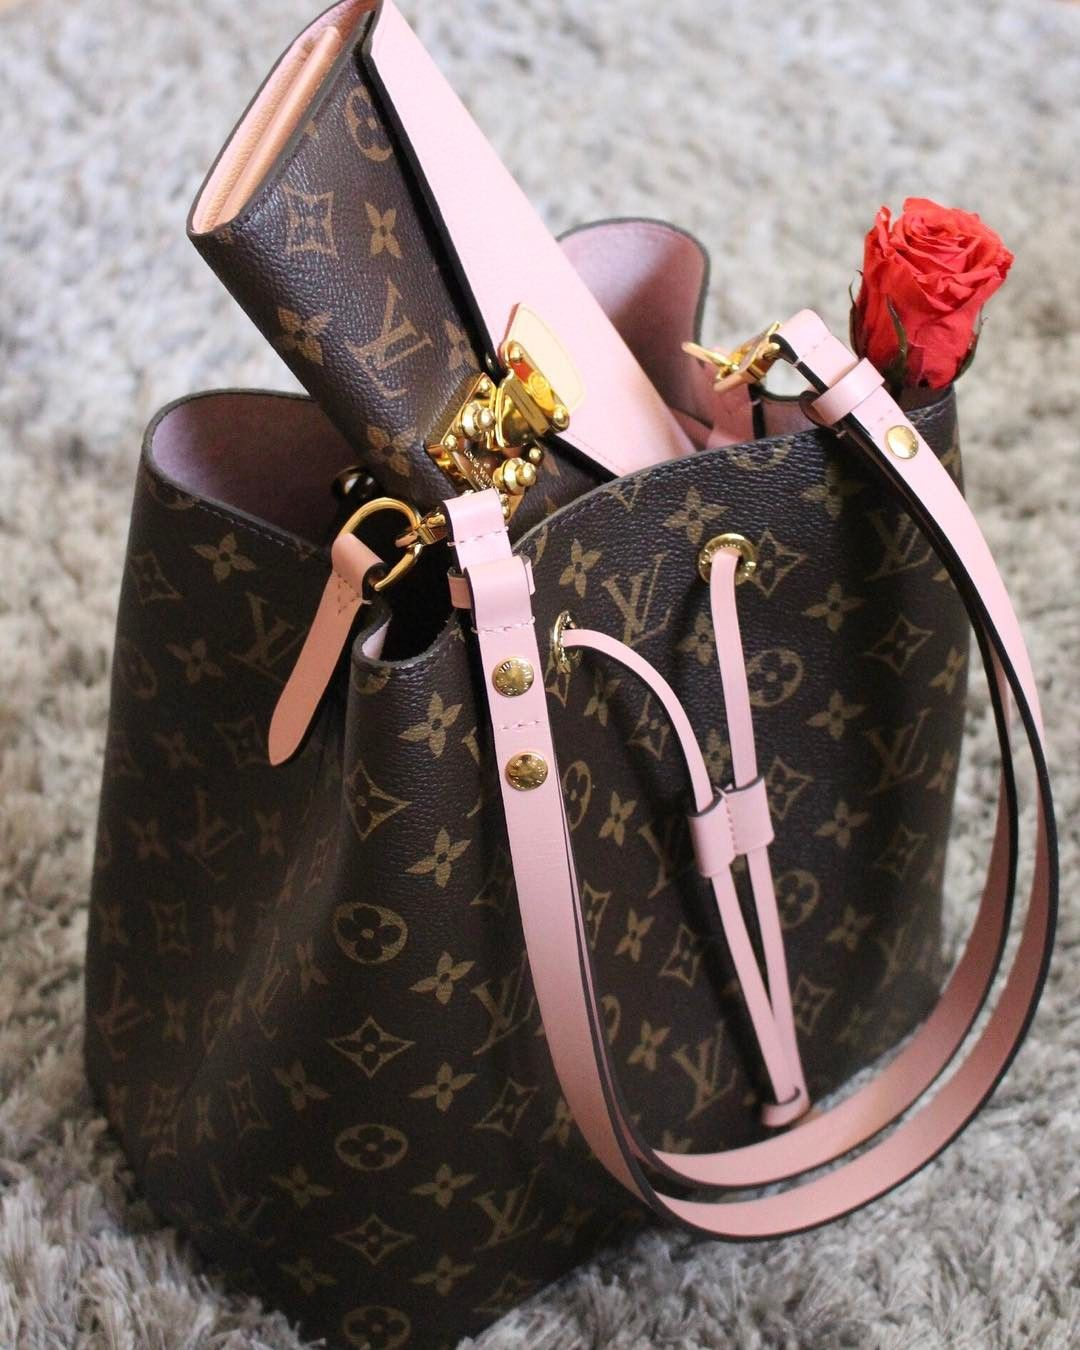 2017 LV Collection In Pink. Louis Vuitton Monogram Neonoe Handbag   Louis  Vuitton Wallet For Women.  Louis  Vuitton  Handbags 384494ef8372a